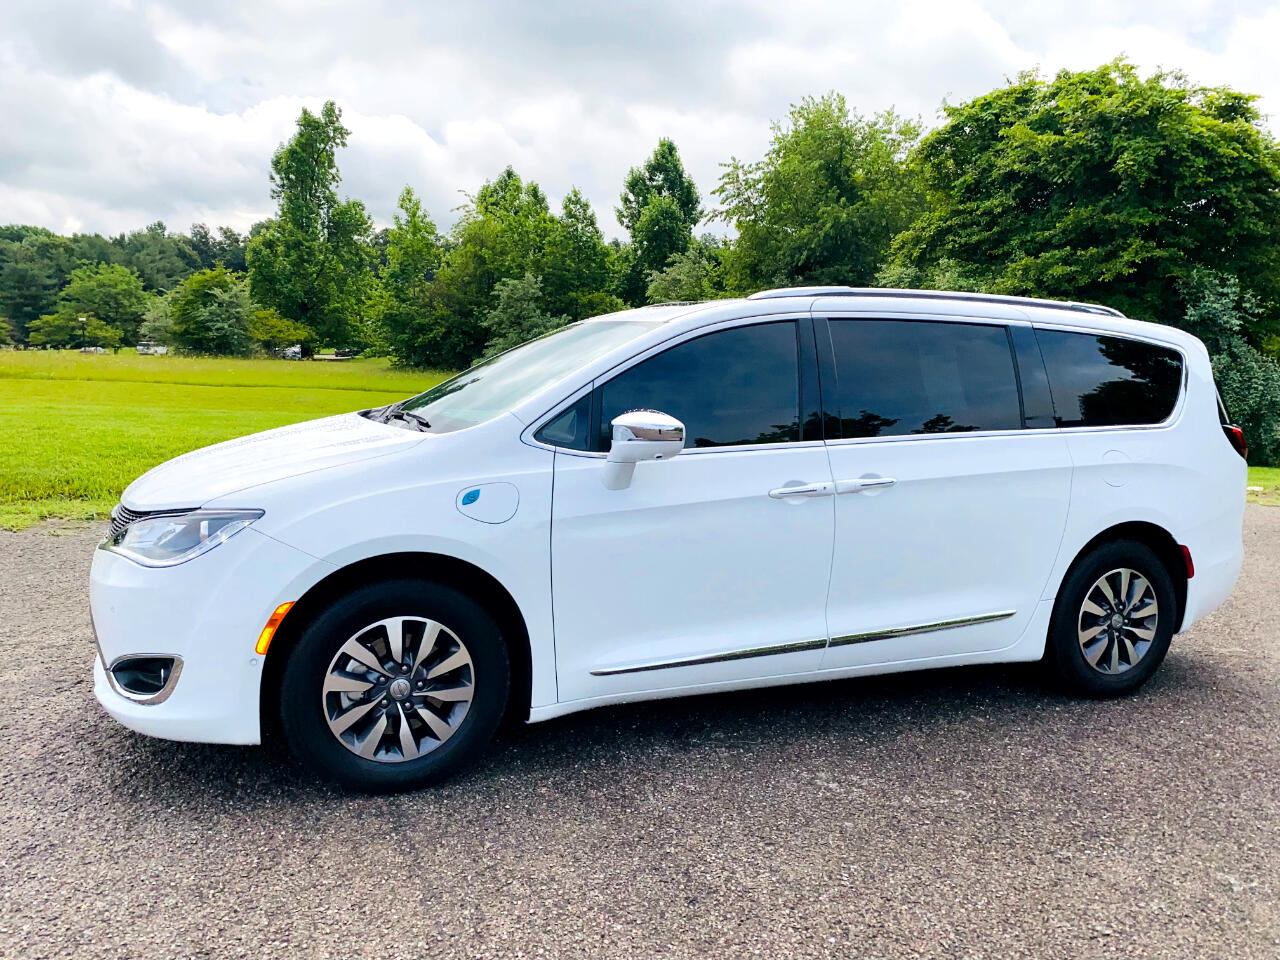 Chrysler Pacifica Hybrid Limited FWD 2020